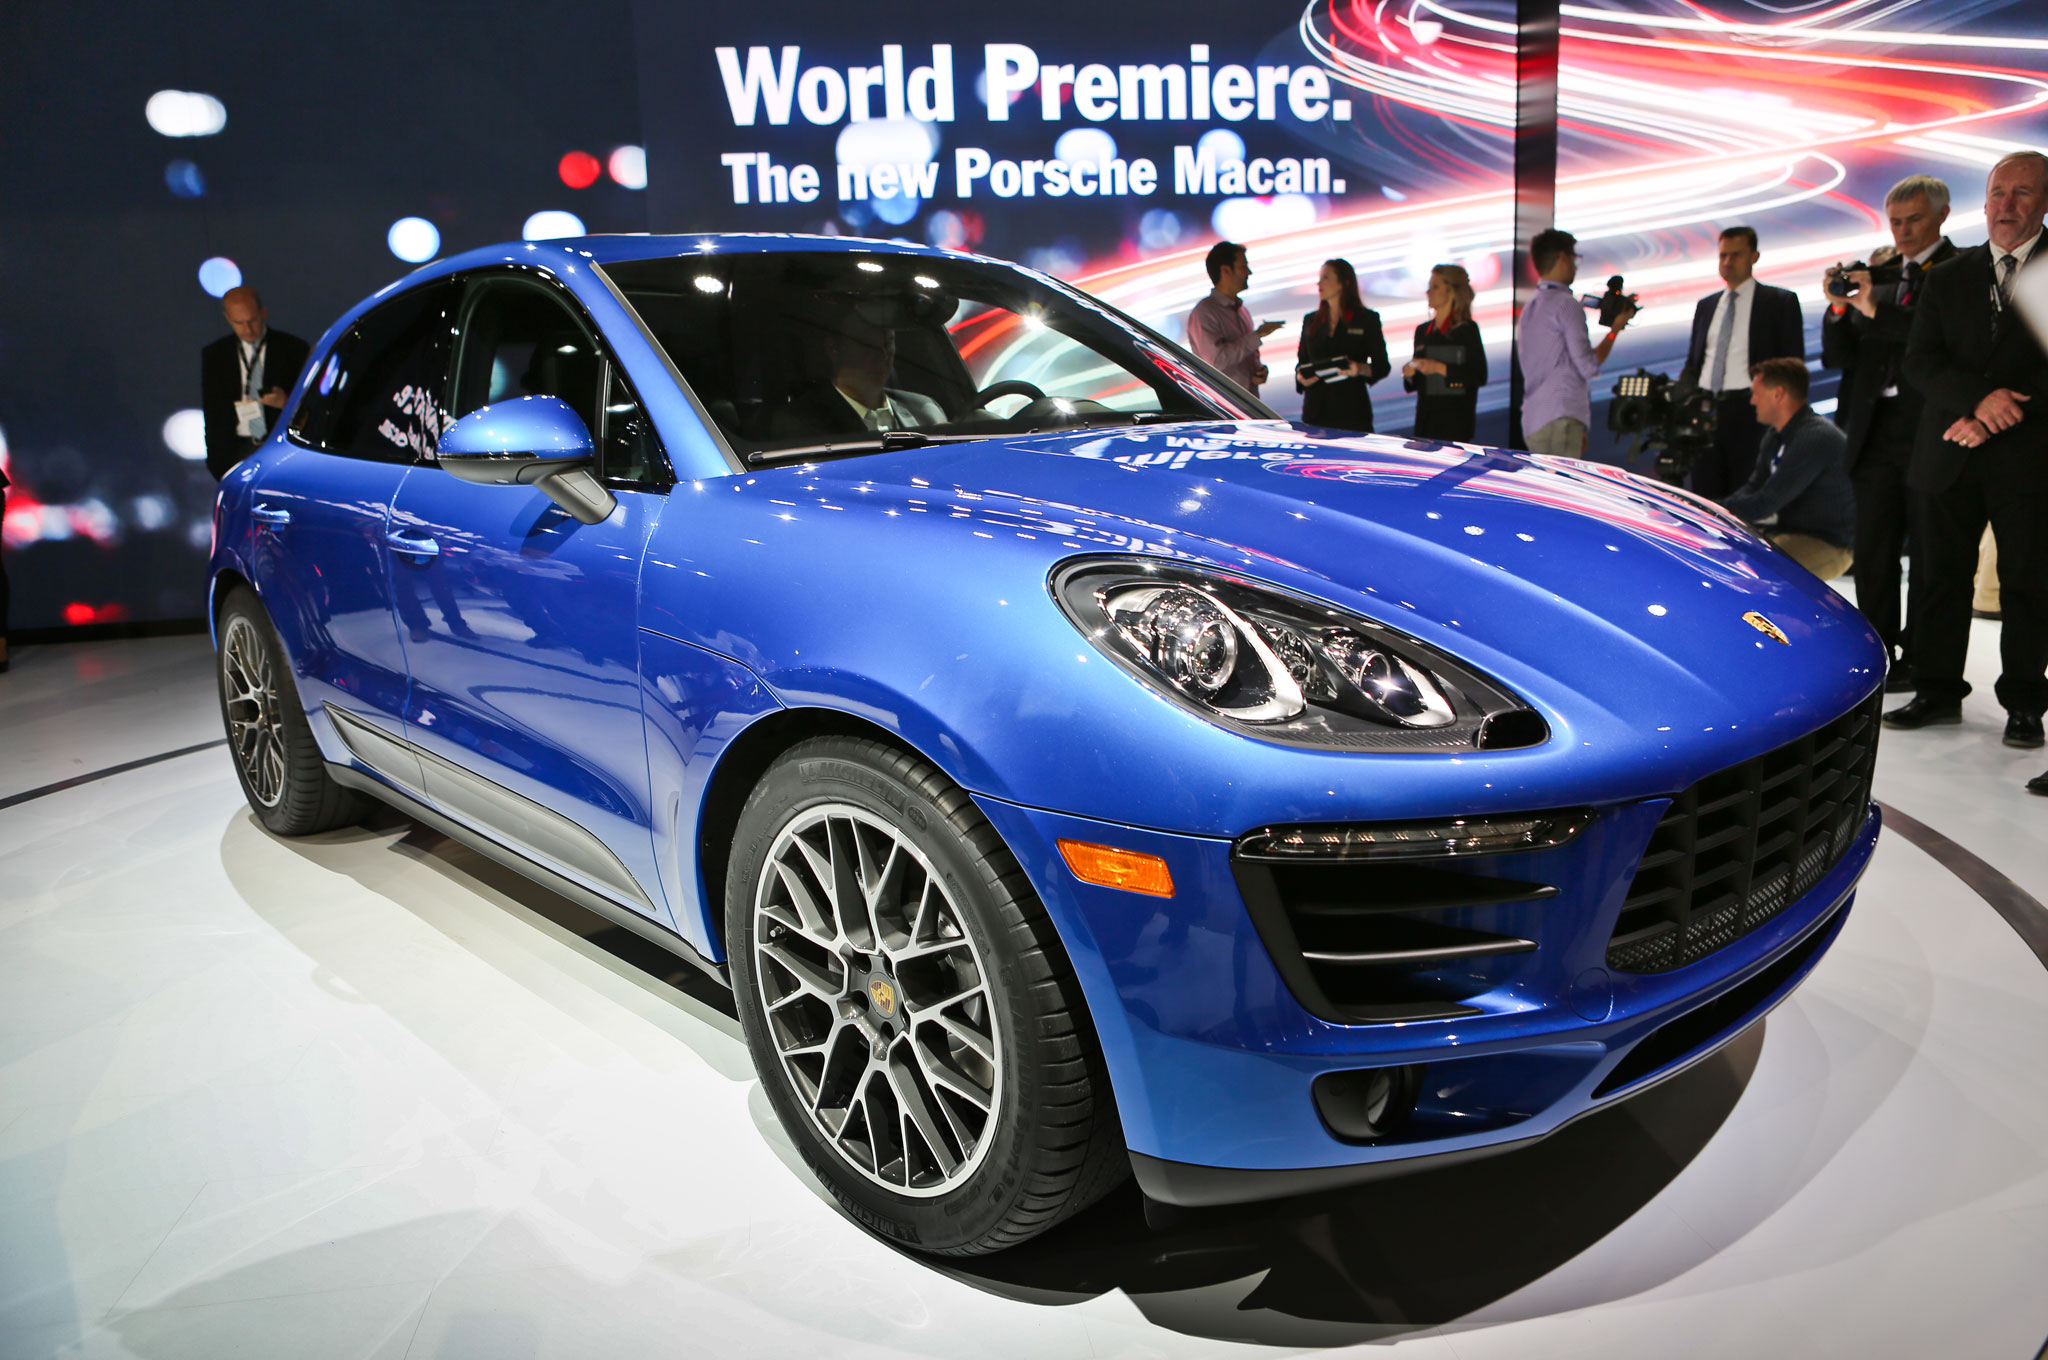 2015 Porsche Macan Configurator Goes Live With Pricing